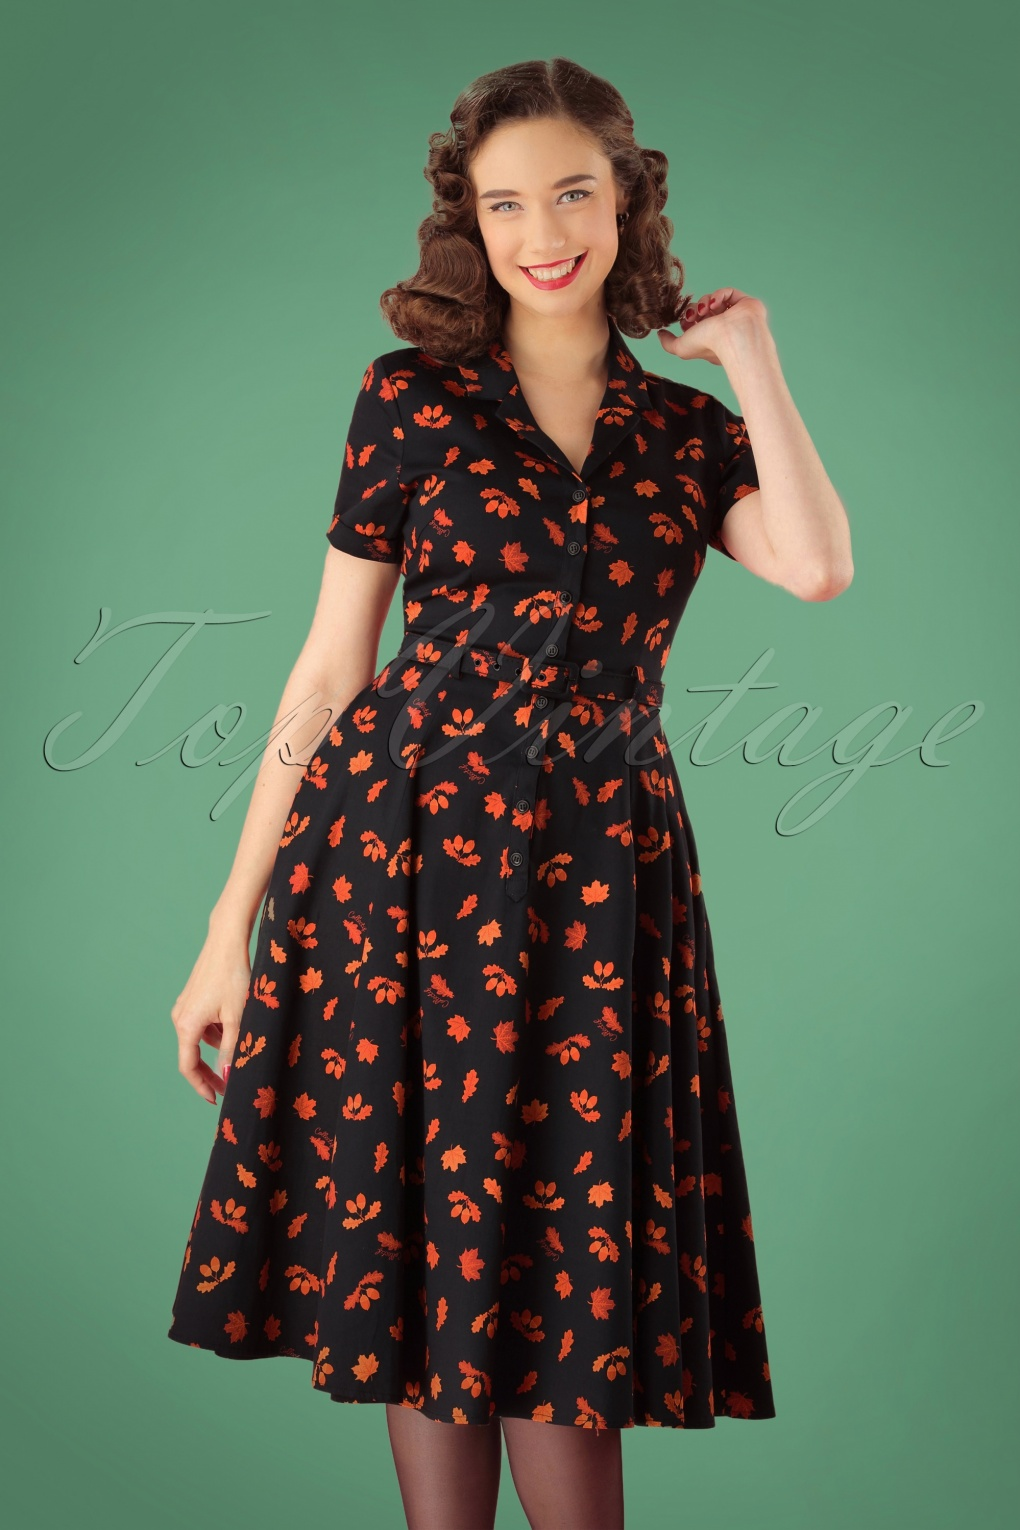 1950s Housewife Dress | 50s Day Dresses 50s Caterina Acorn Swing Dress in Black £53.14 AT vintagedancer.com